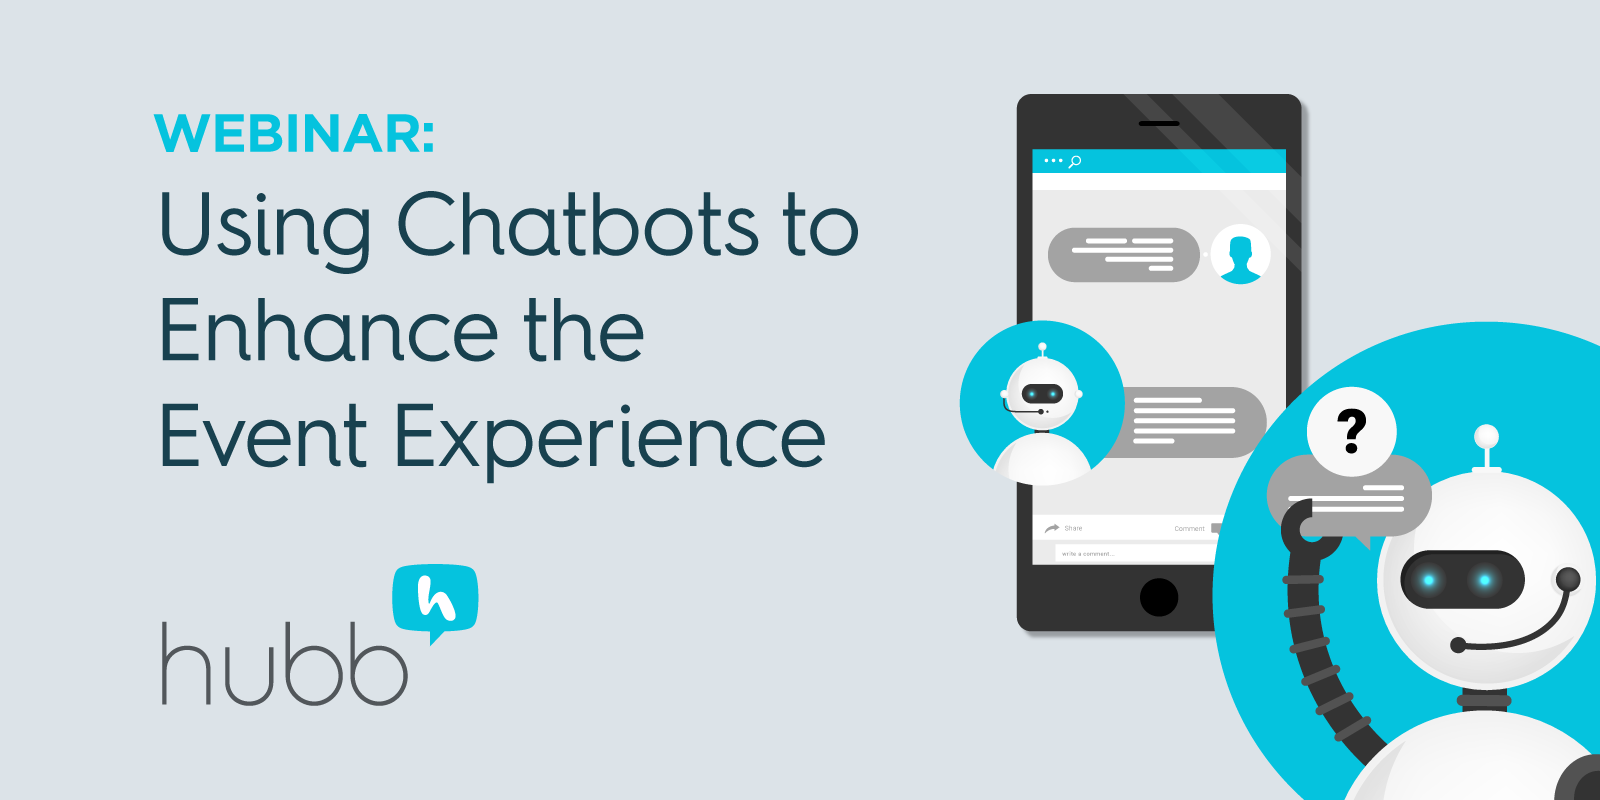 Webinar: Using chatbots to enhance the event experience